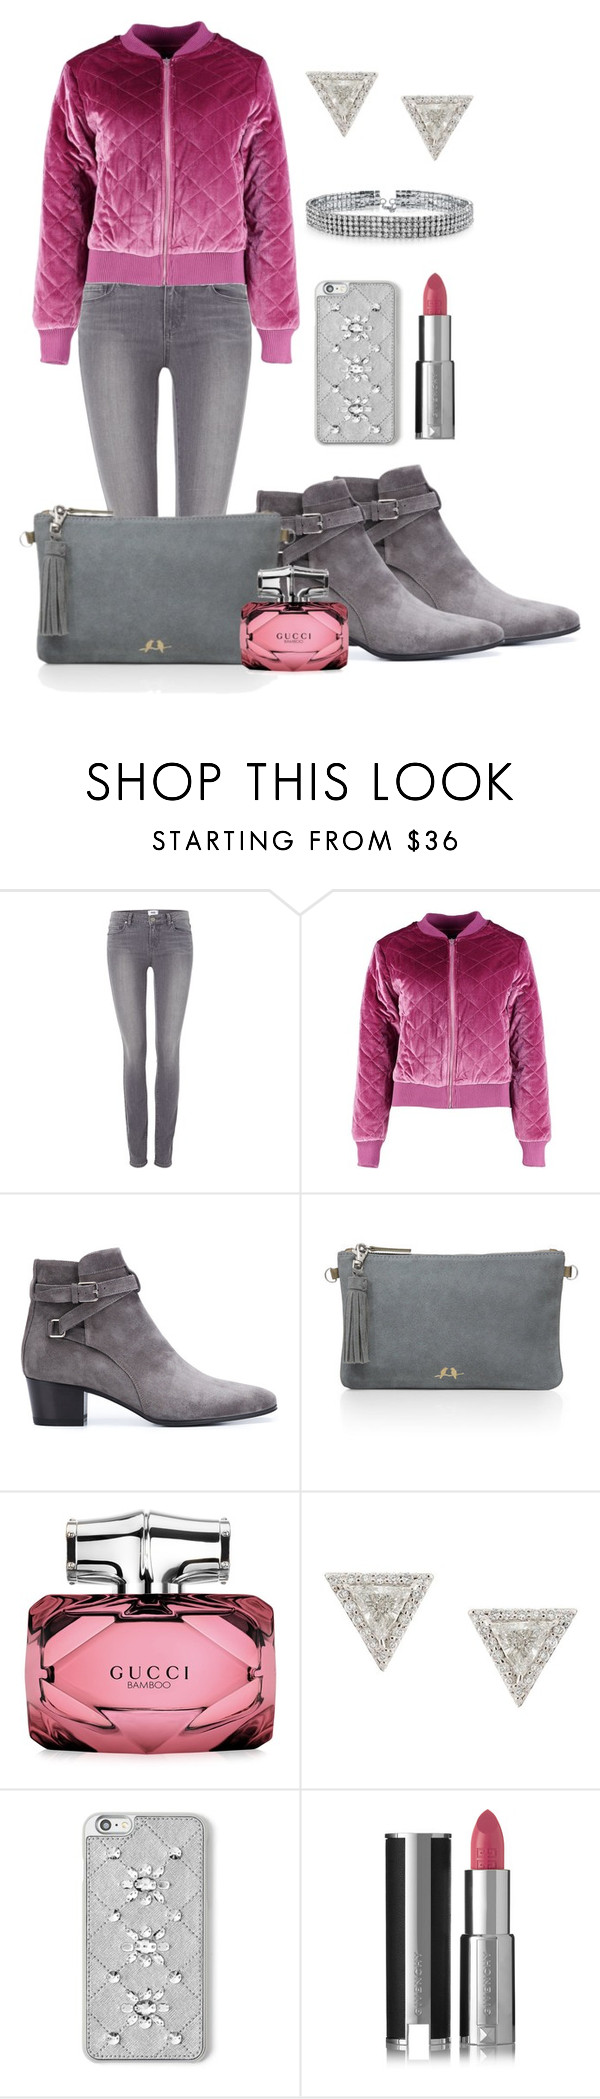 """""""Becca"""" by thoughts-of-thea ❤ liked on Polyvore featuring Paige Denim, Boohoo, Yves Saint Laurent, Chloe + Isabel, Gucci, Lizzie Mandler, MICHAEL Michael Kors, Givenchy and Bling Jewelry"""